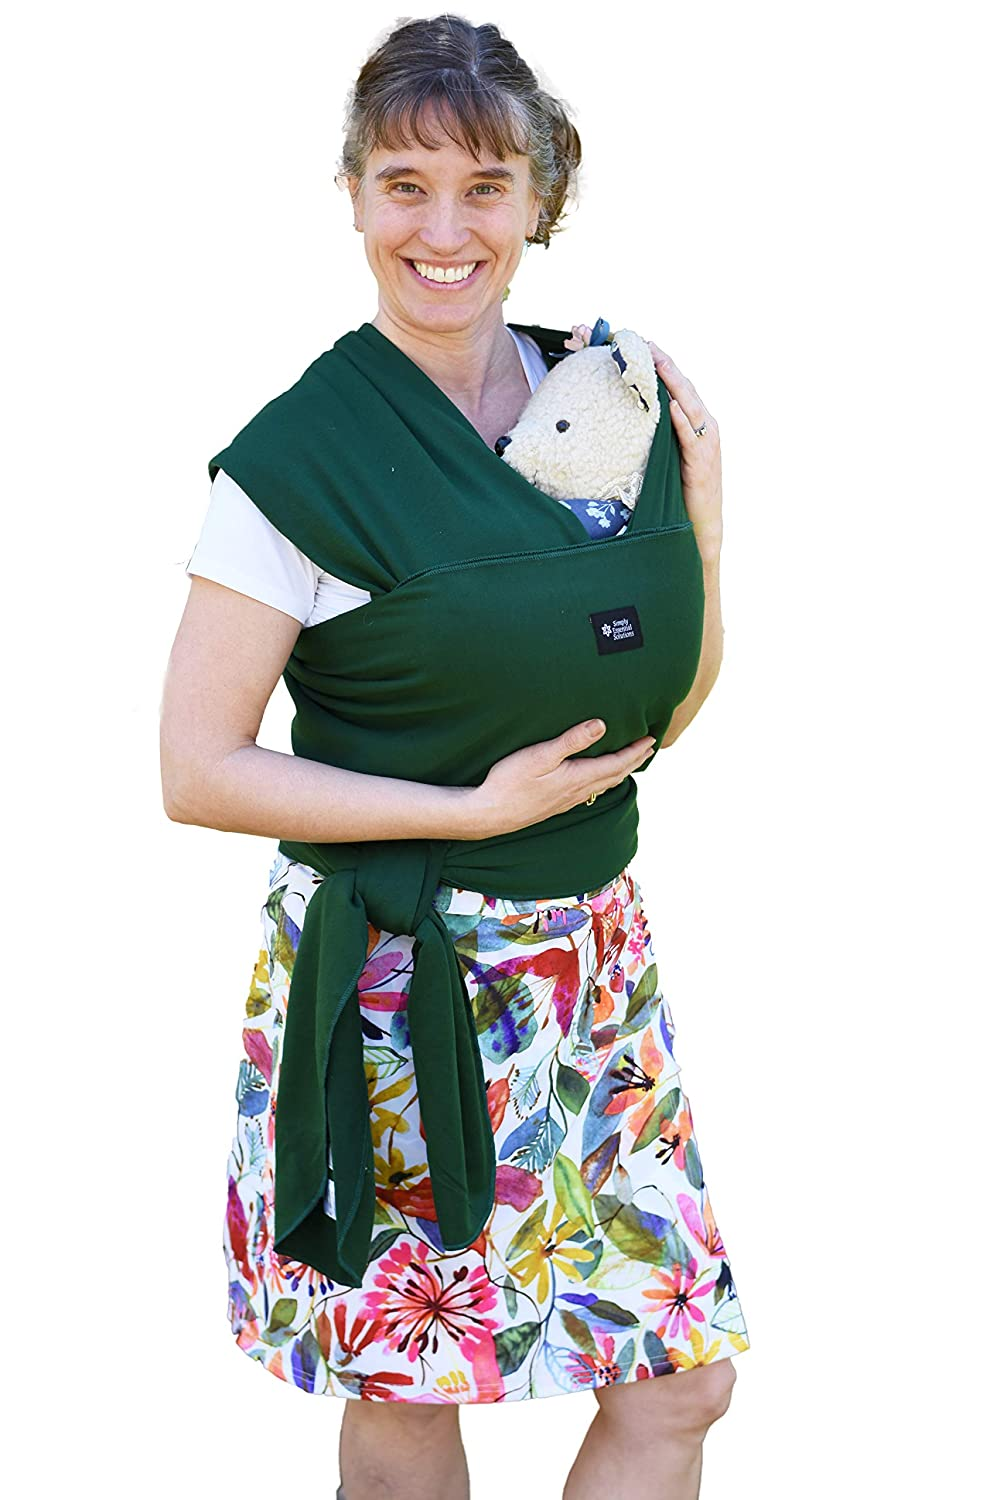 Baby Wrap Carrier Soft Department store Breathable Cotton B Stretchy 67% OFF of fixed price